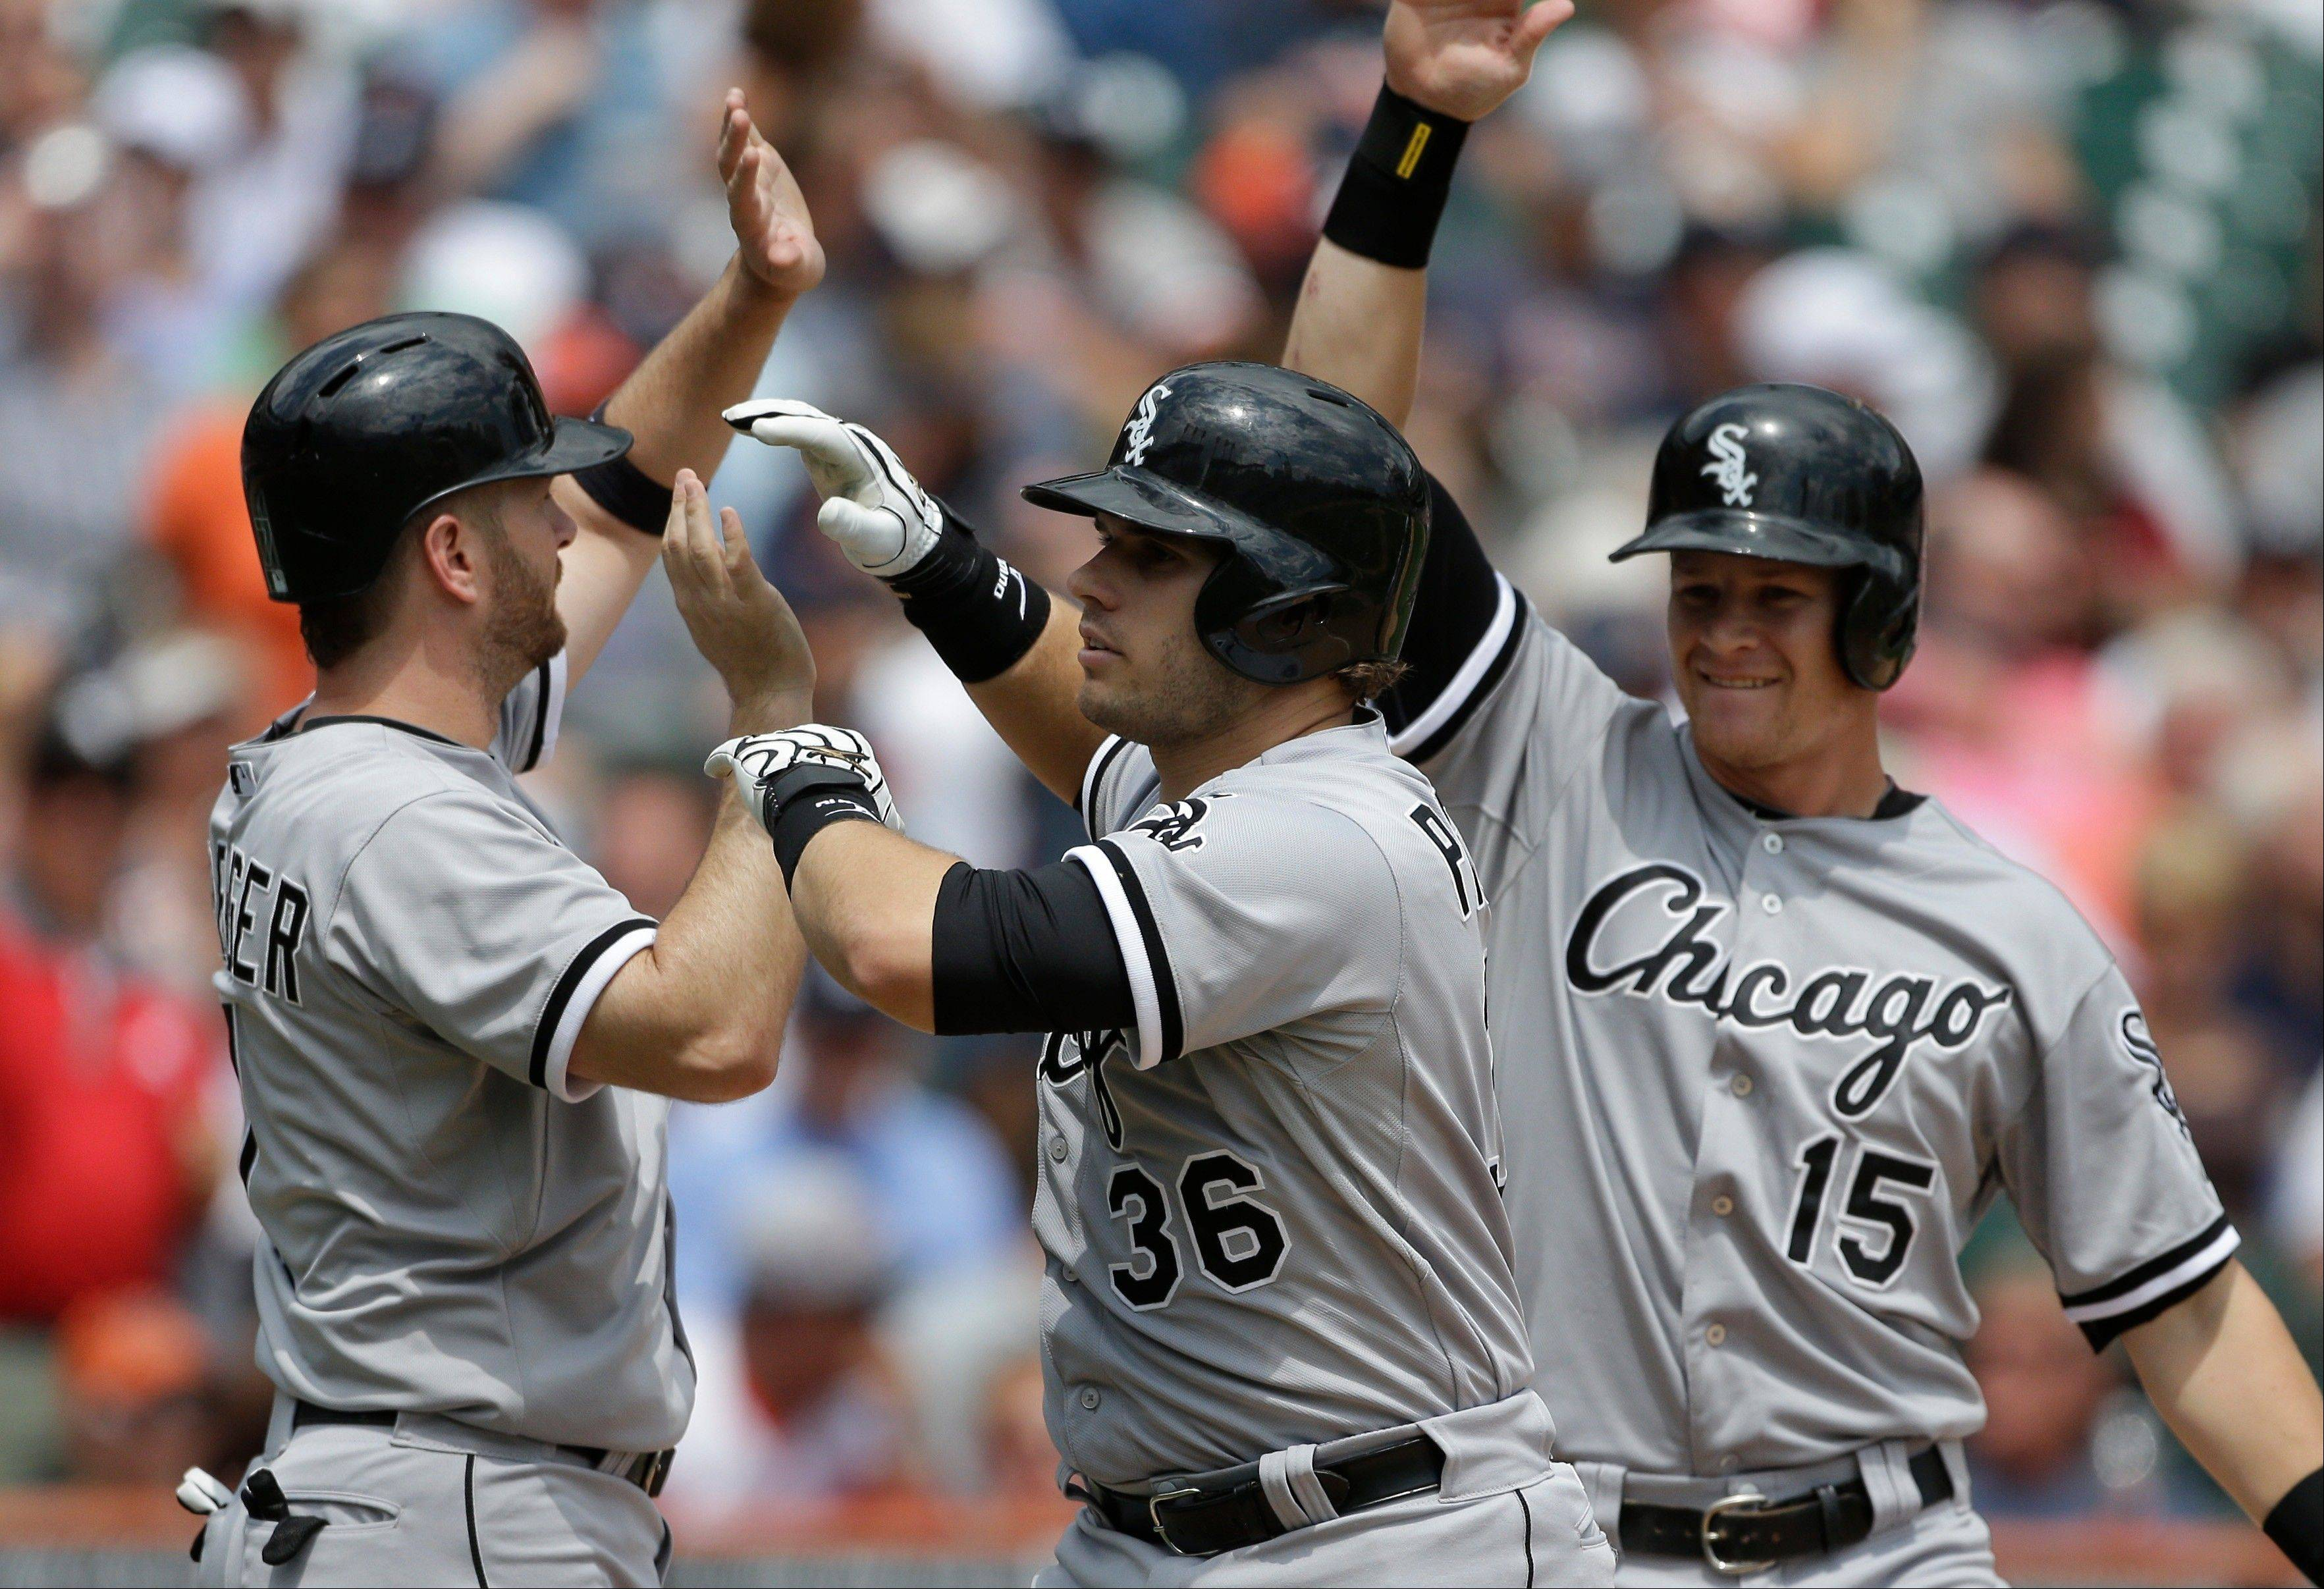 White Sox catcher Josh Phegley is congratulated by teammates Jeff Keppinger, left, and Gordon Beckham after his grand slam in the sixth inning of Thursday's victory at Detroit. Phegley and Beckham are two players who figure to stay put on the South Side.